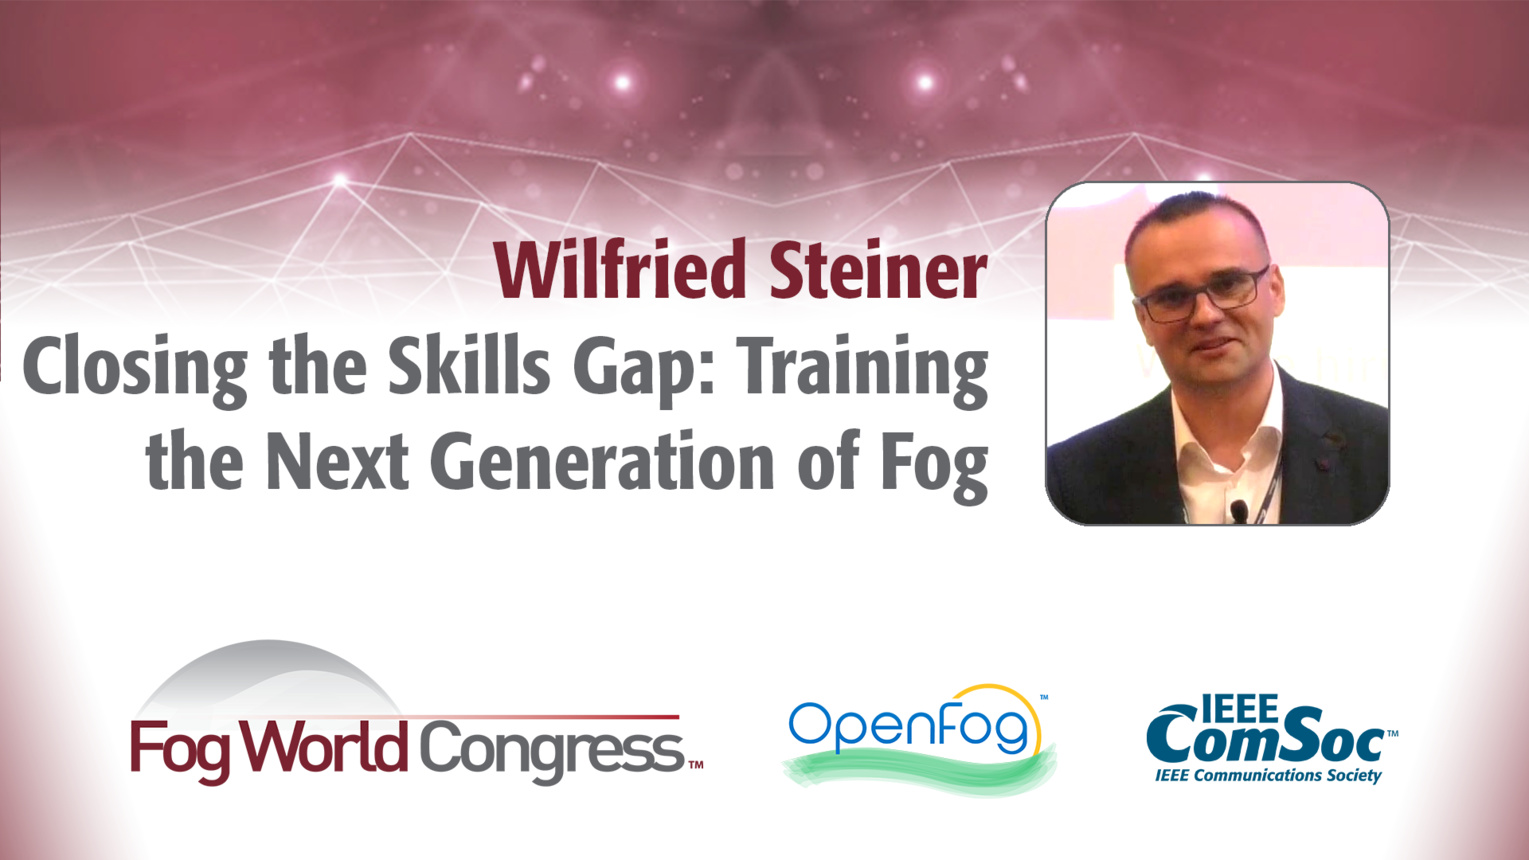 Closing the Skills Gap: Training the Next Generation of Fog - Wilfried Steiner, Fog World Congress 2017